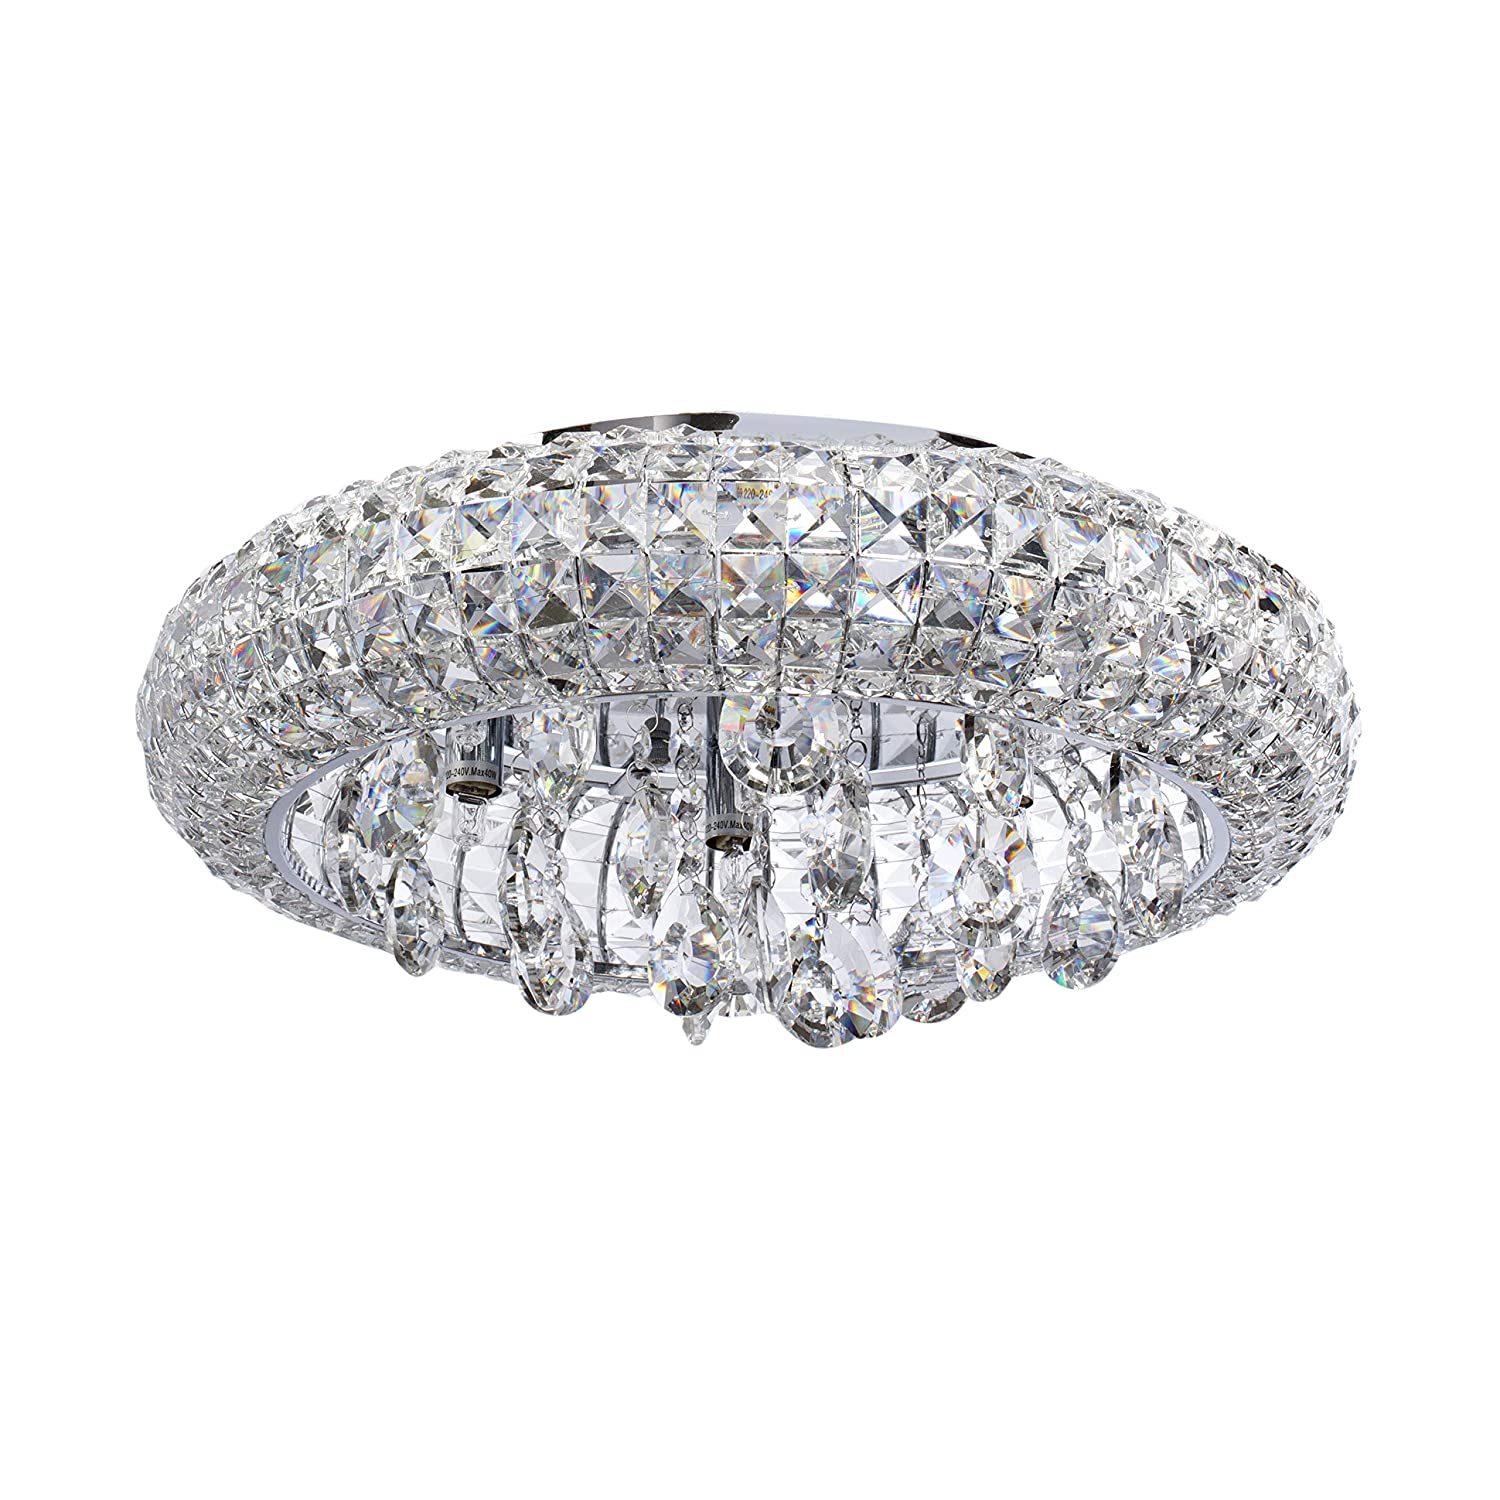 Mw light 276014207 flush ceiling light crystal low ceiling transparent chrome classic style for living room dining room bedroom g9 7 x 40w incl